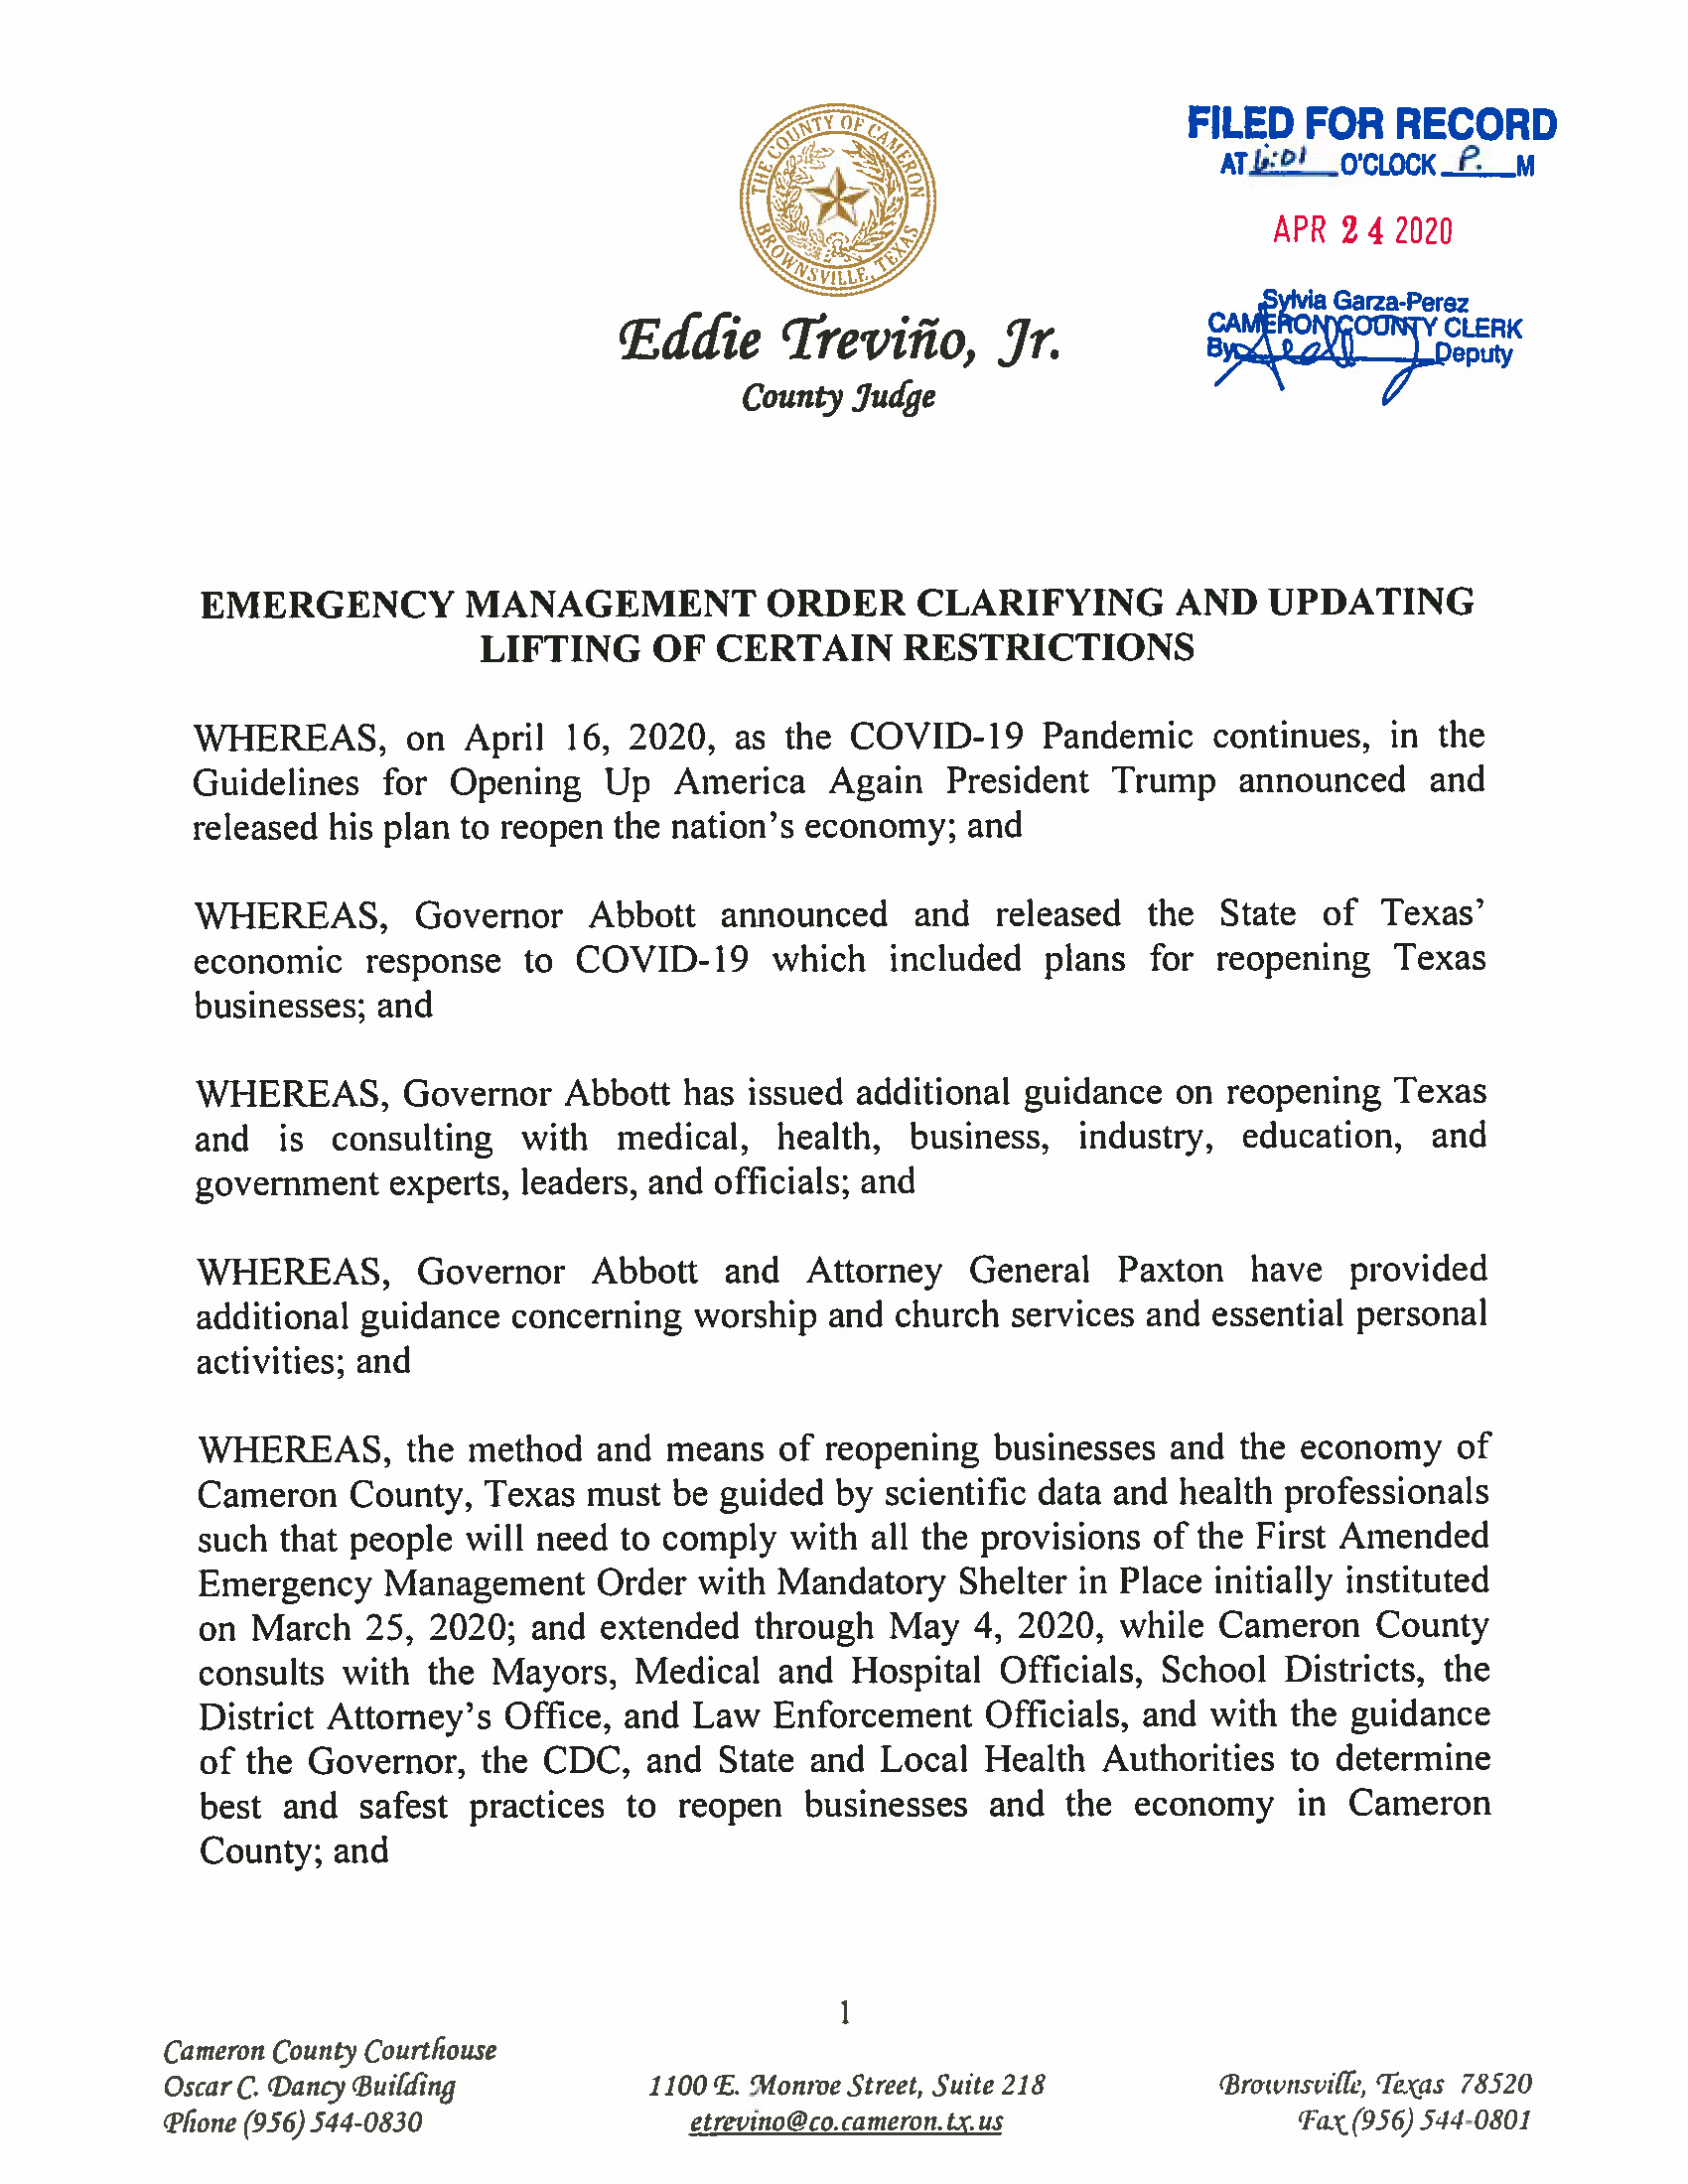 Emergency Management Order Clarifying And Updating Lifting Of Certain Restrictions Page 1